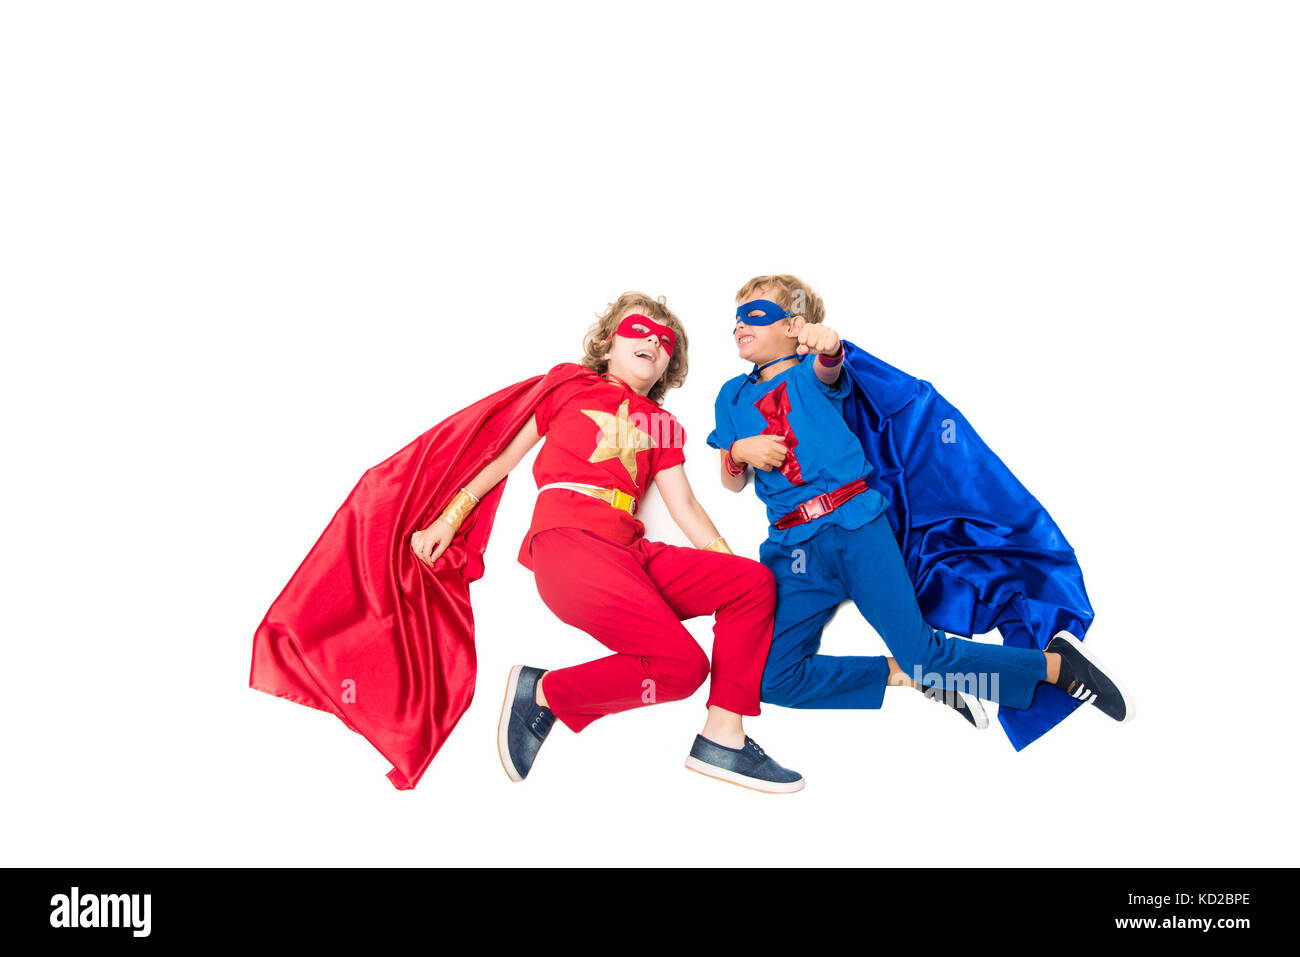 Flying Suits Stockfotos & Flying Suits Bilder - Alamy